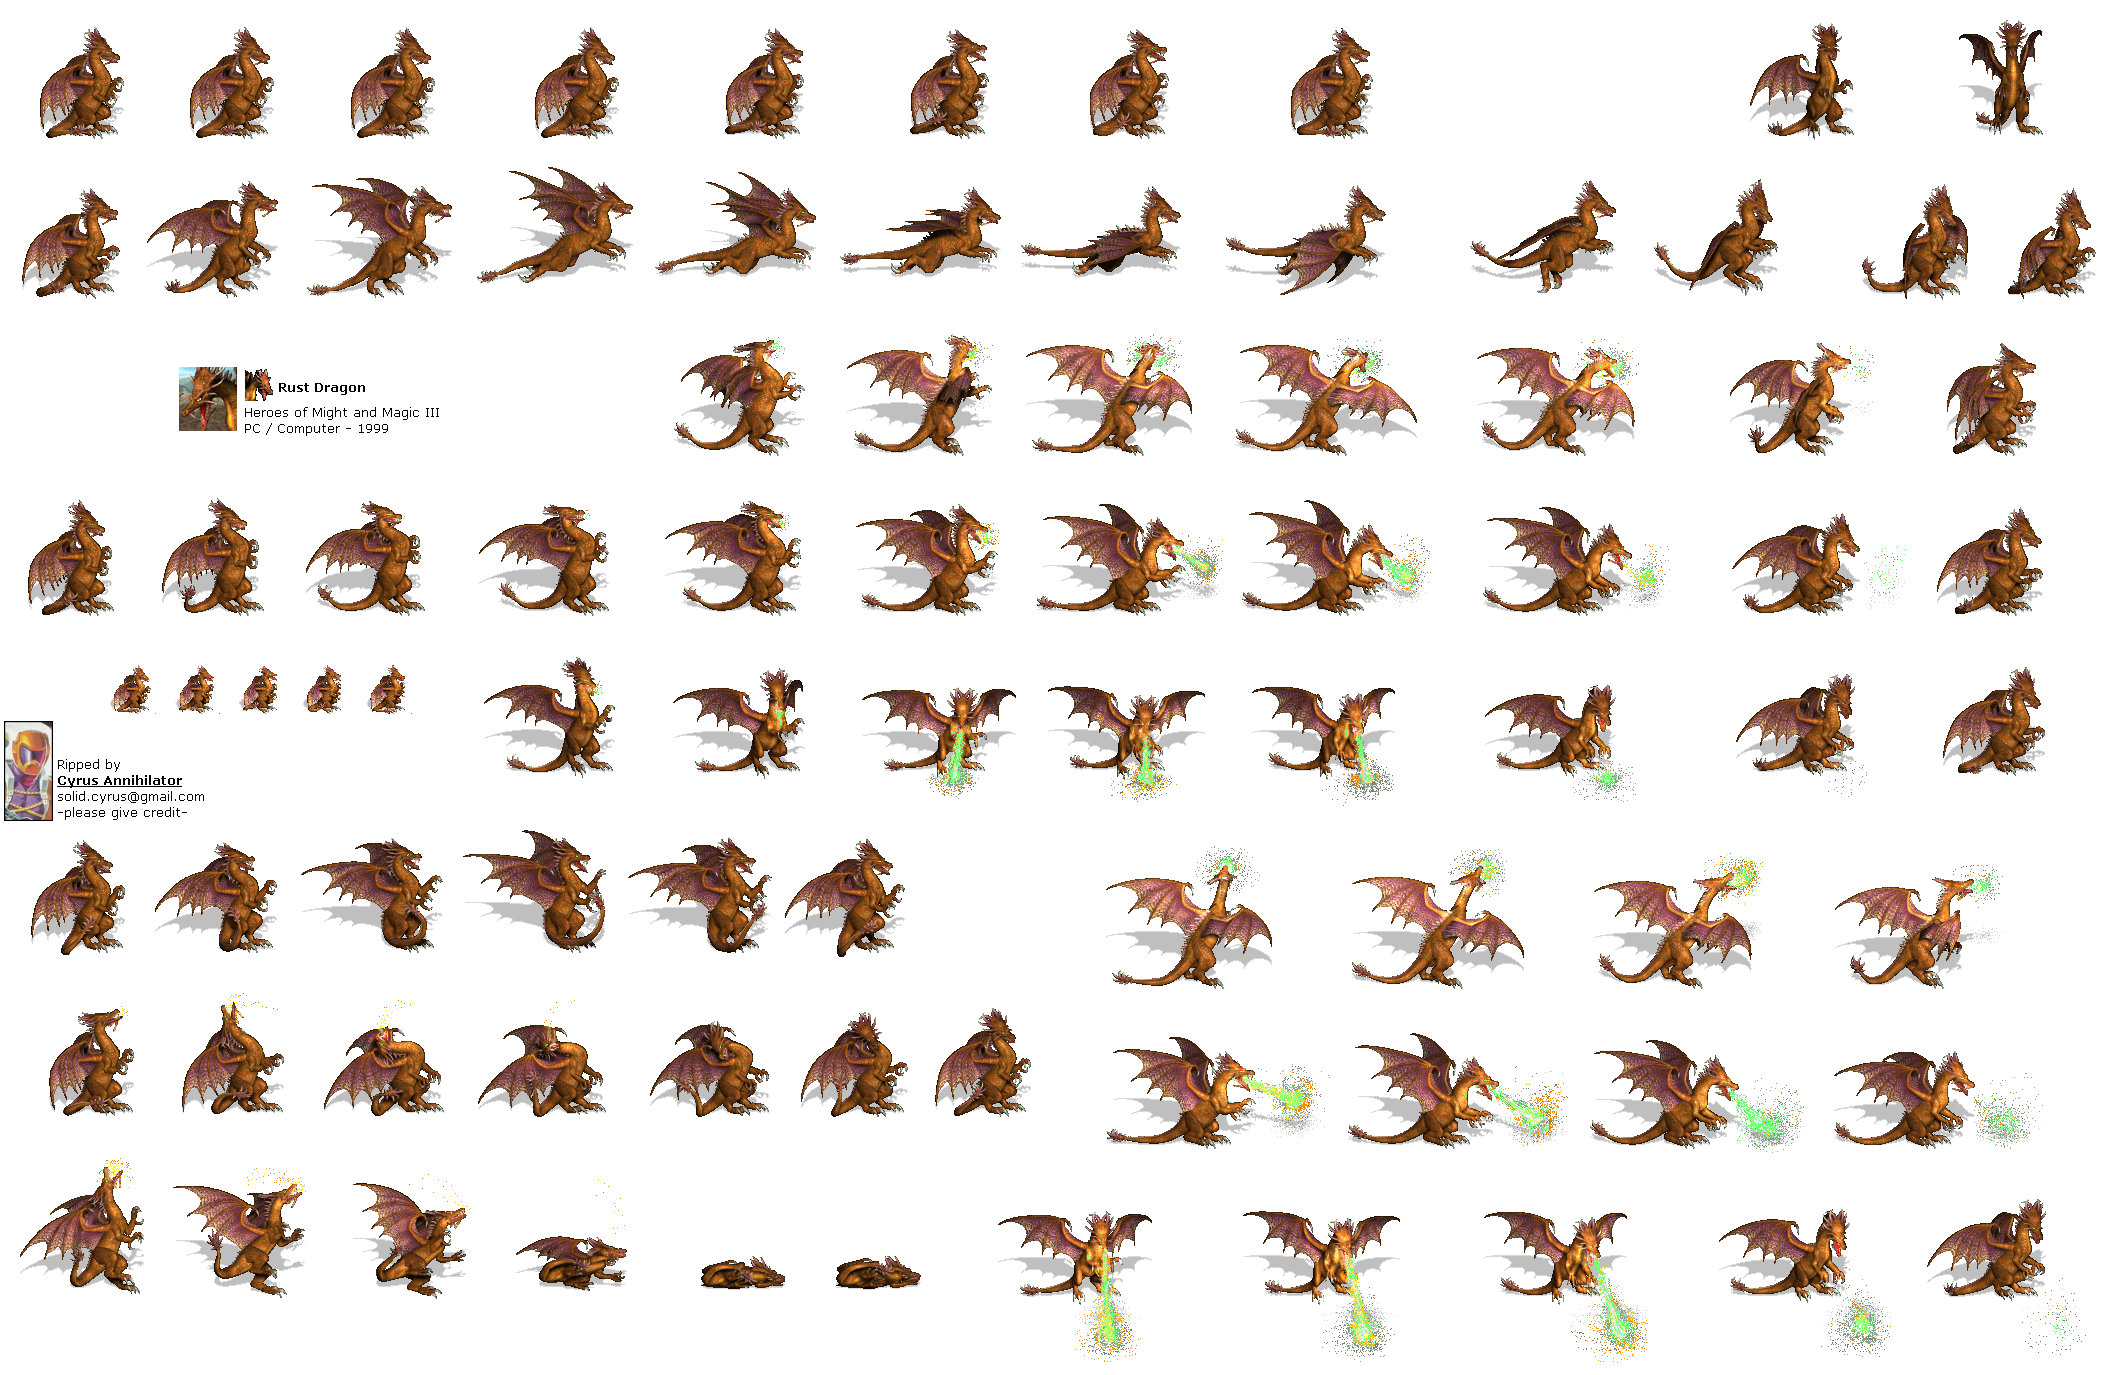 Dragon sprite png. Pc computer heroes of